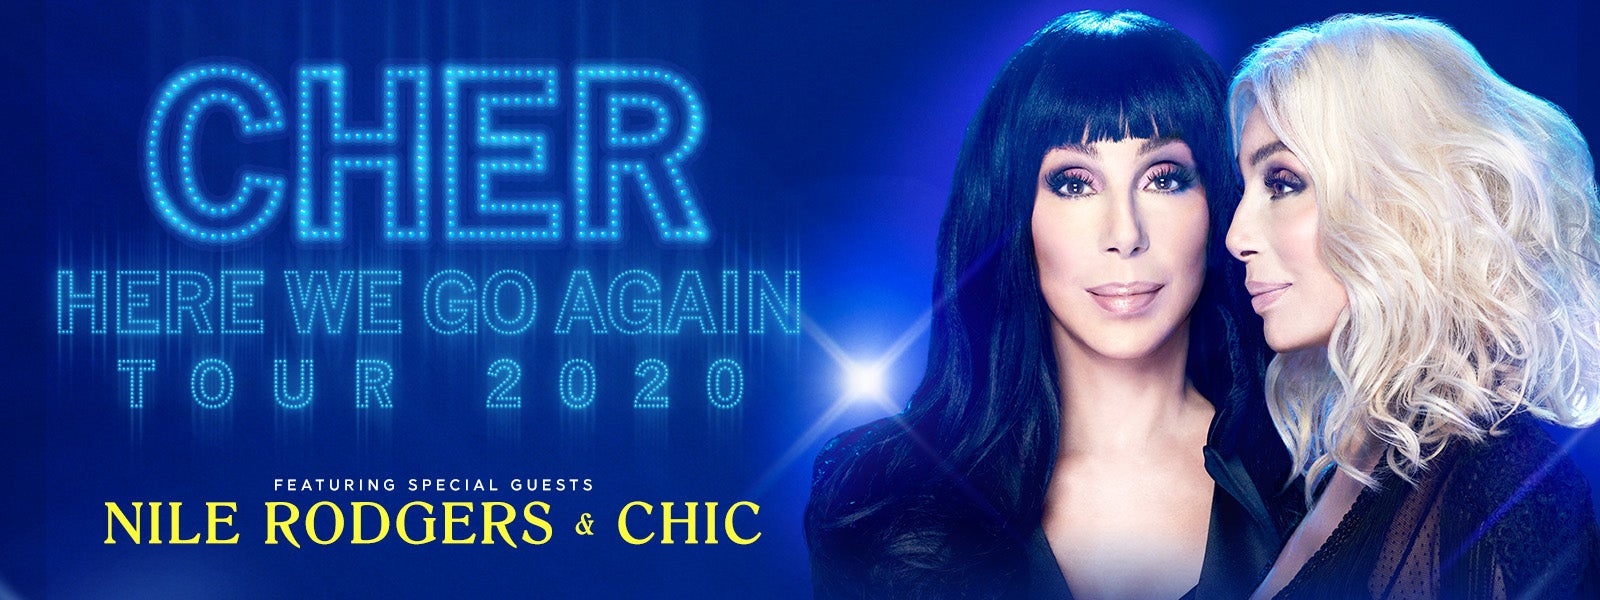 CANCELED: Cher